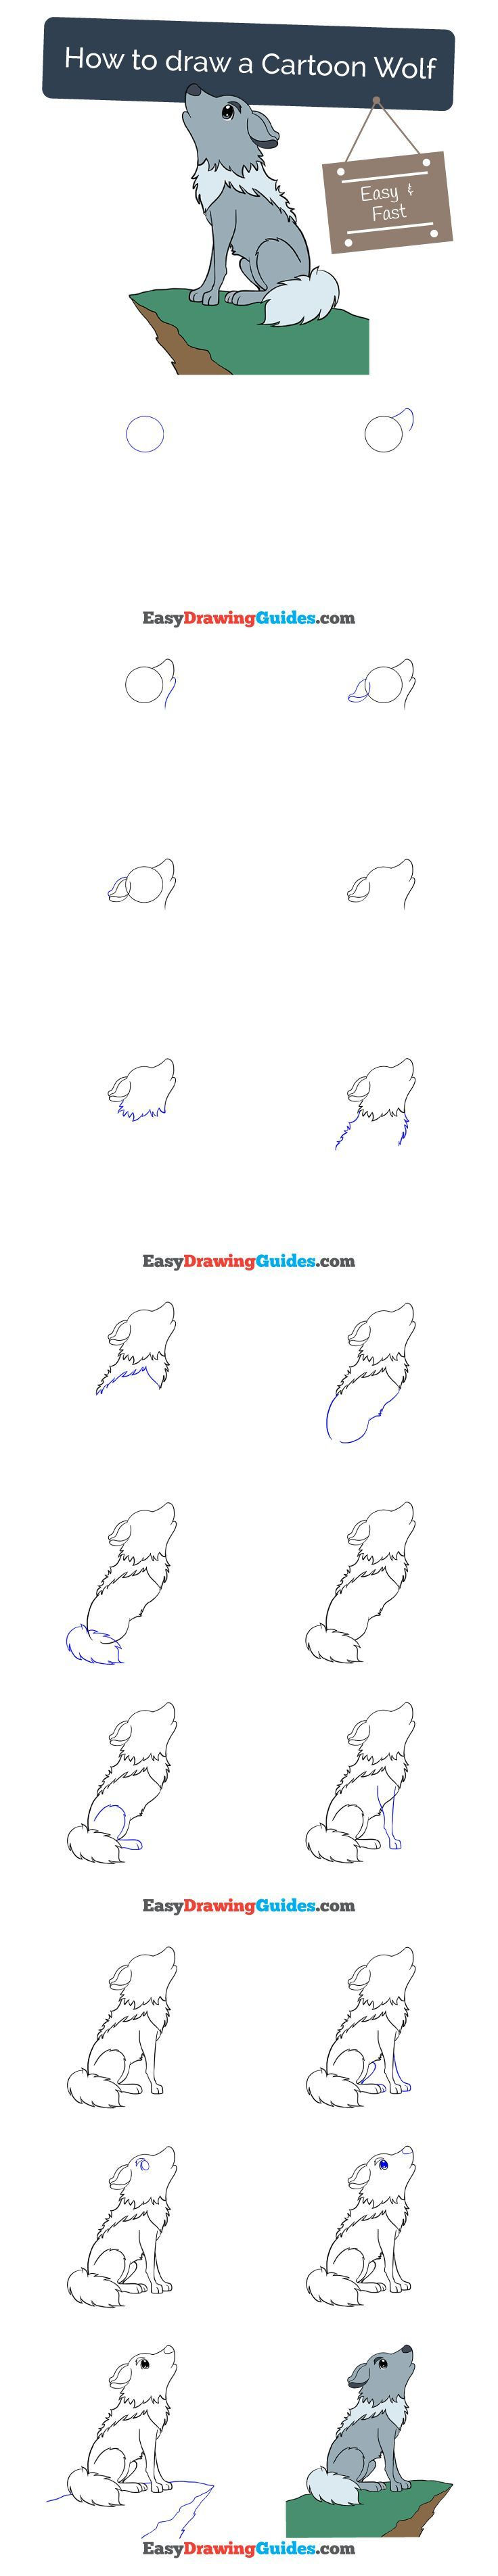 Uncategorized How To Draw A Cartoon Wolf learn how to draw with easy step by guides cartoon wolf a drawing tutorial